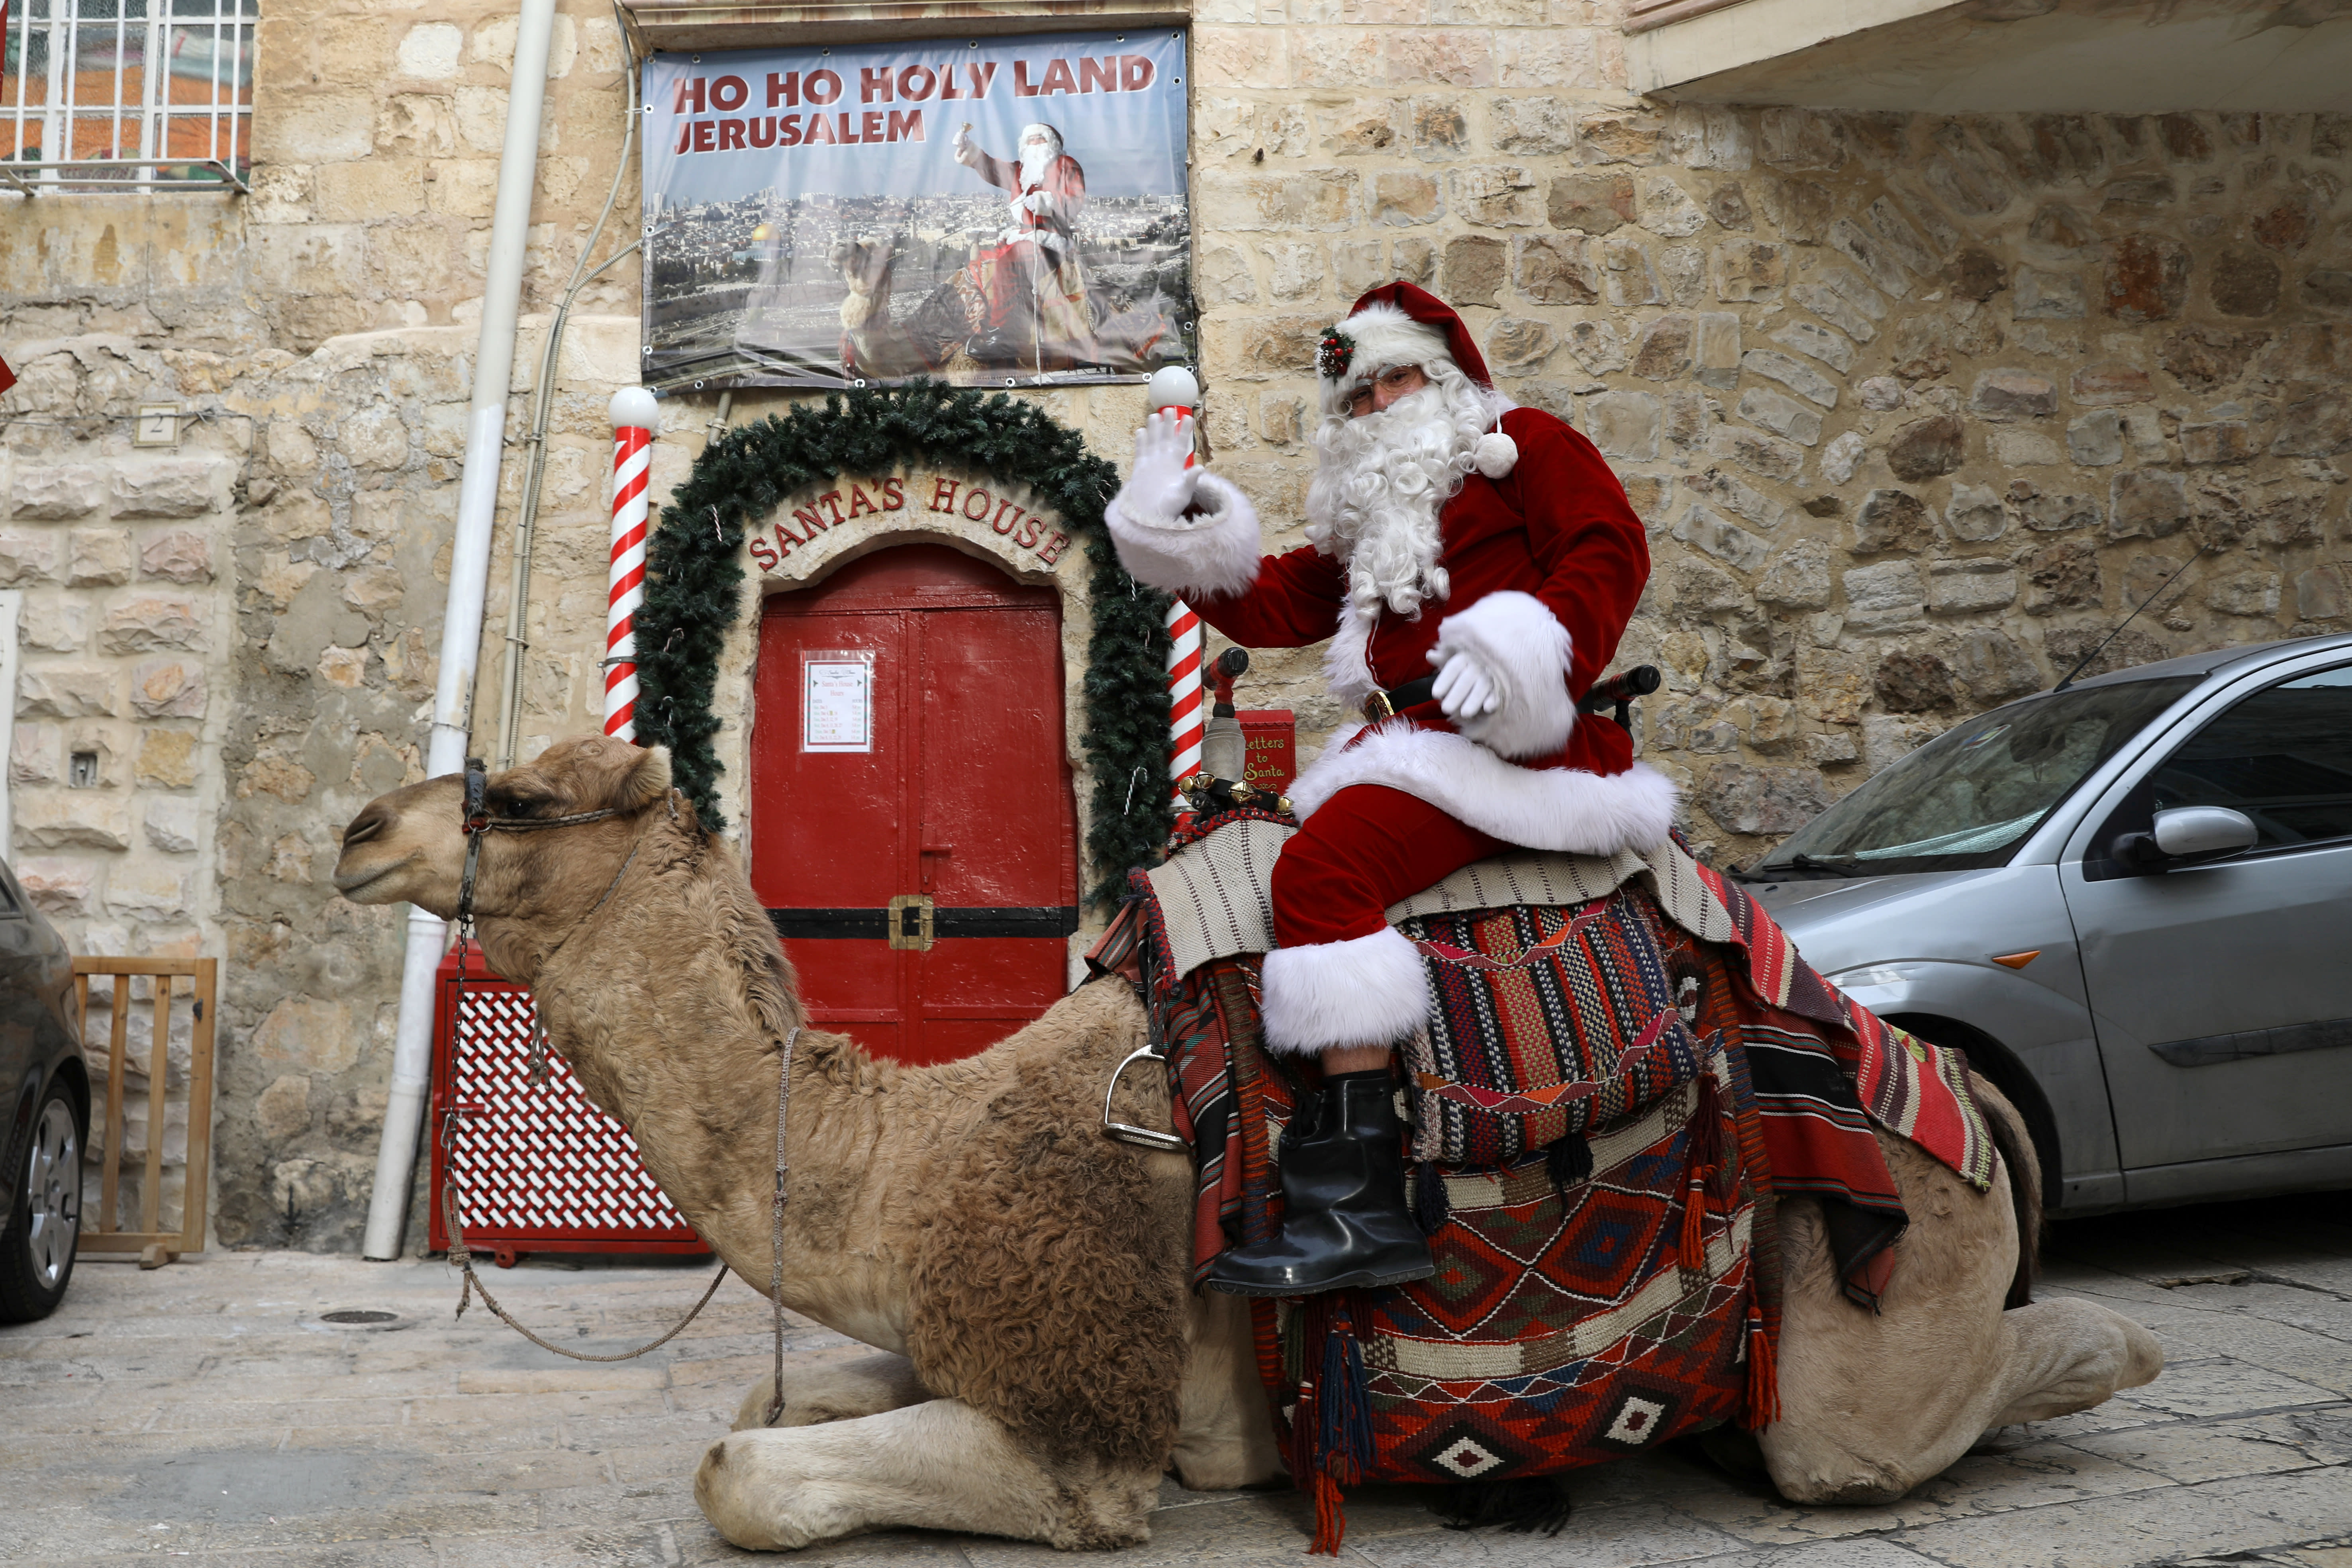 Camel-riding Santa Offers Free Christmas Trees To